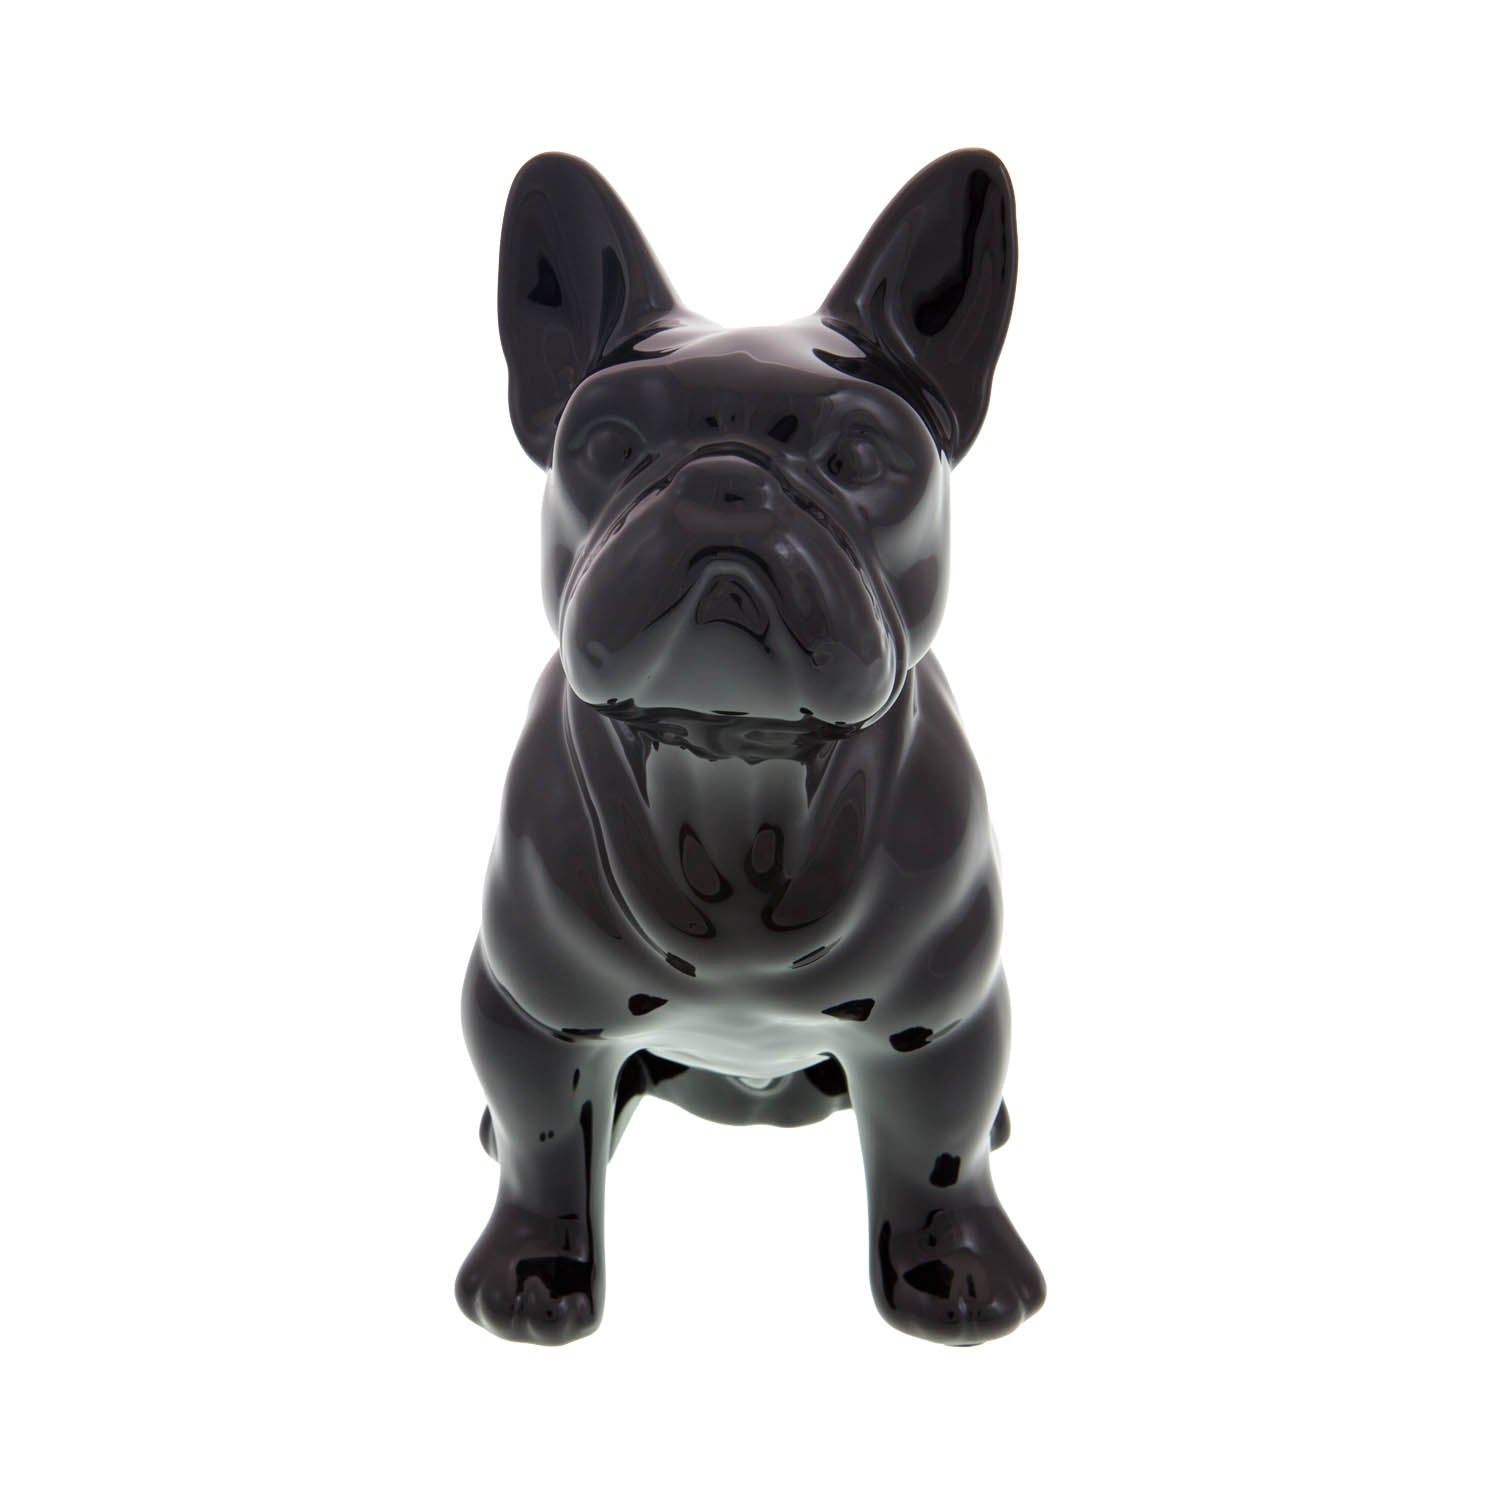 Dog Krazy Gifts – Black French Bulldog Money Box – High gloss ceramic part of the French Bulldog Range available from DogKrazyGifts.co.uk